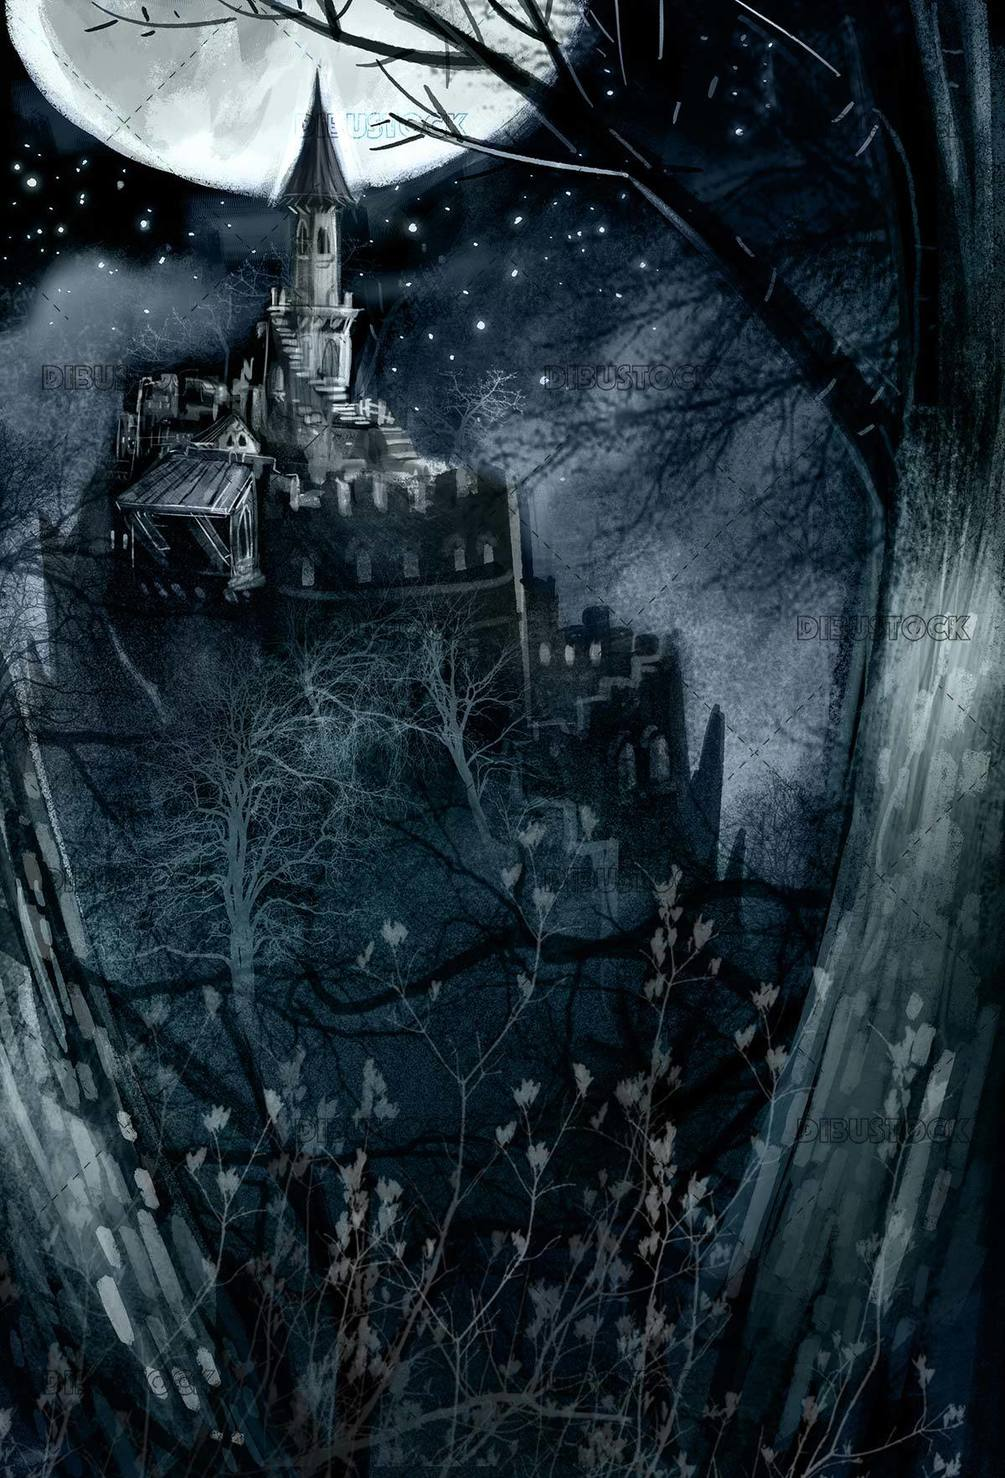 night background with castle in the mountain